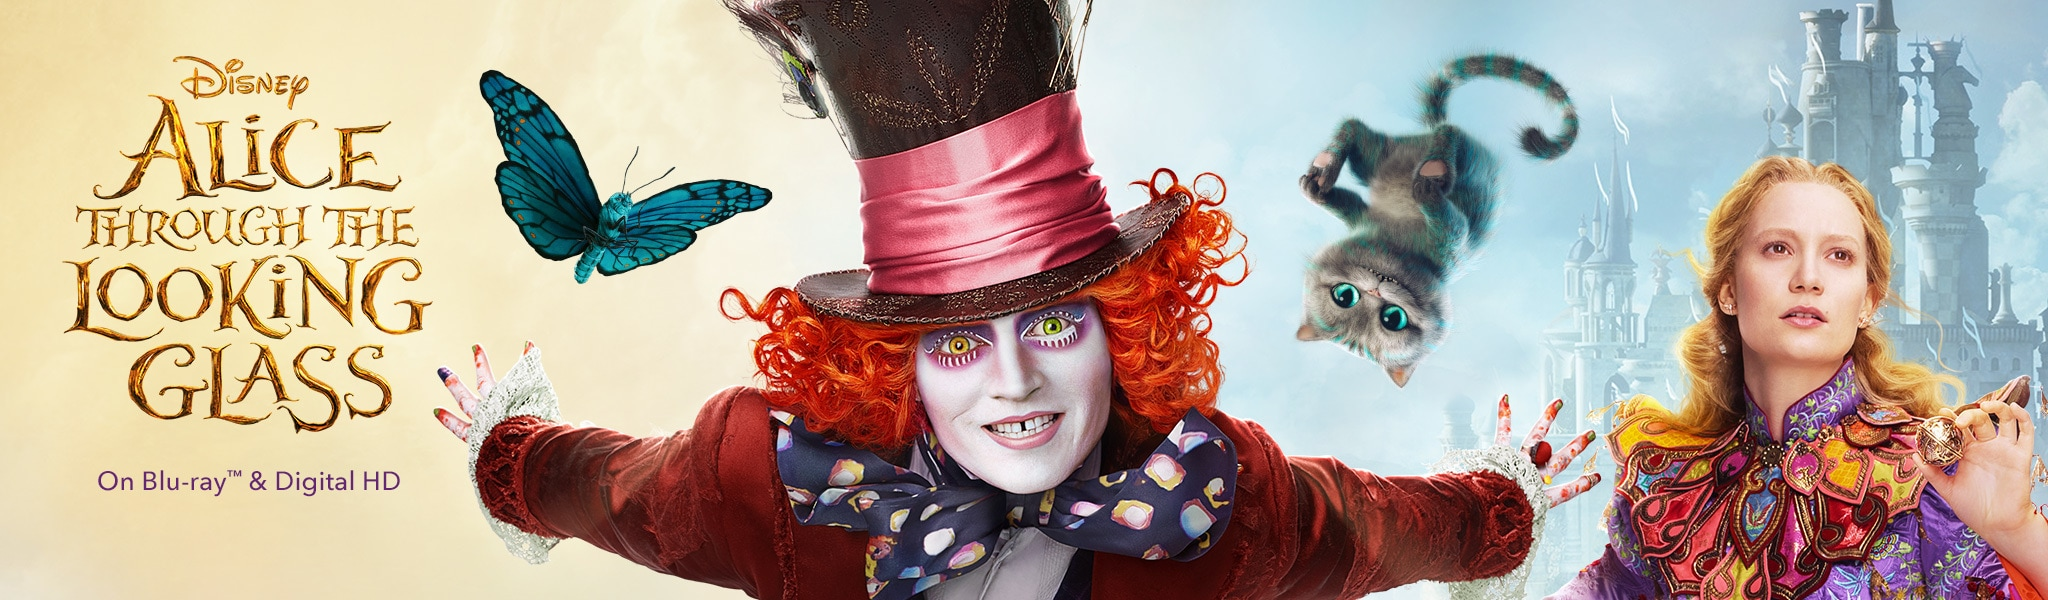 alice through the looking glass download free